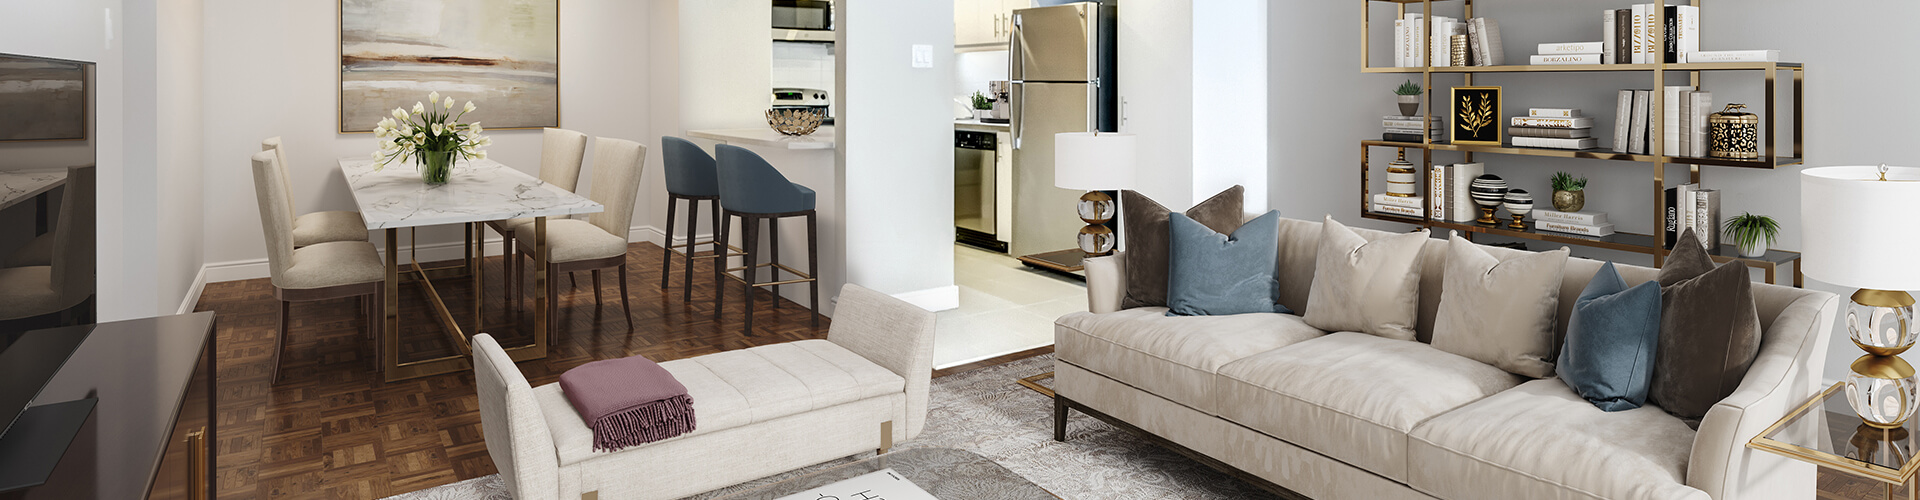 Modern living at Rockhill Apartments in Montreal. Rent with Minto Apartments.